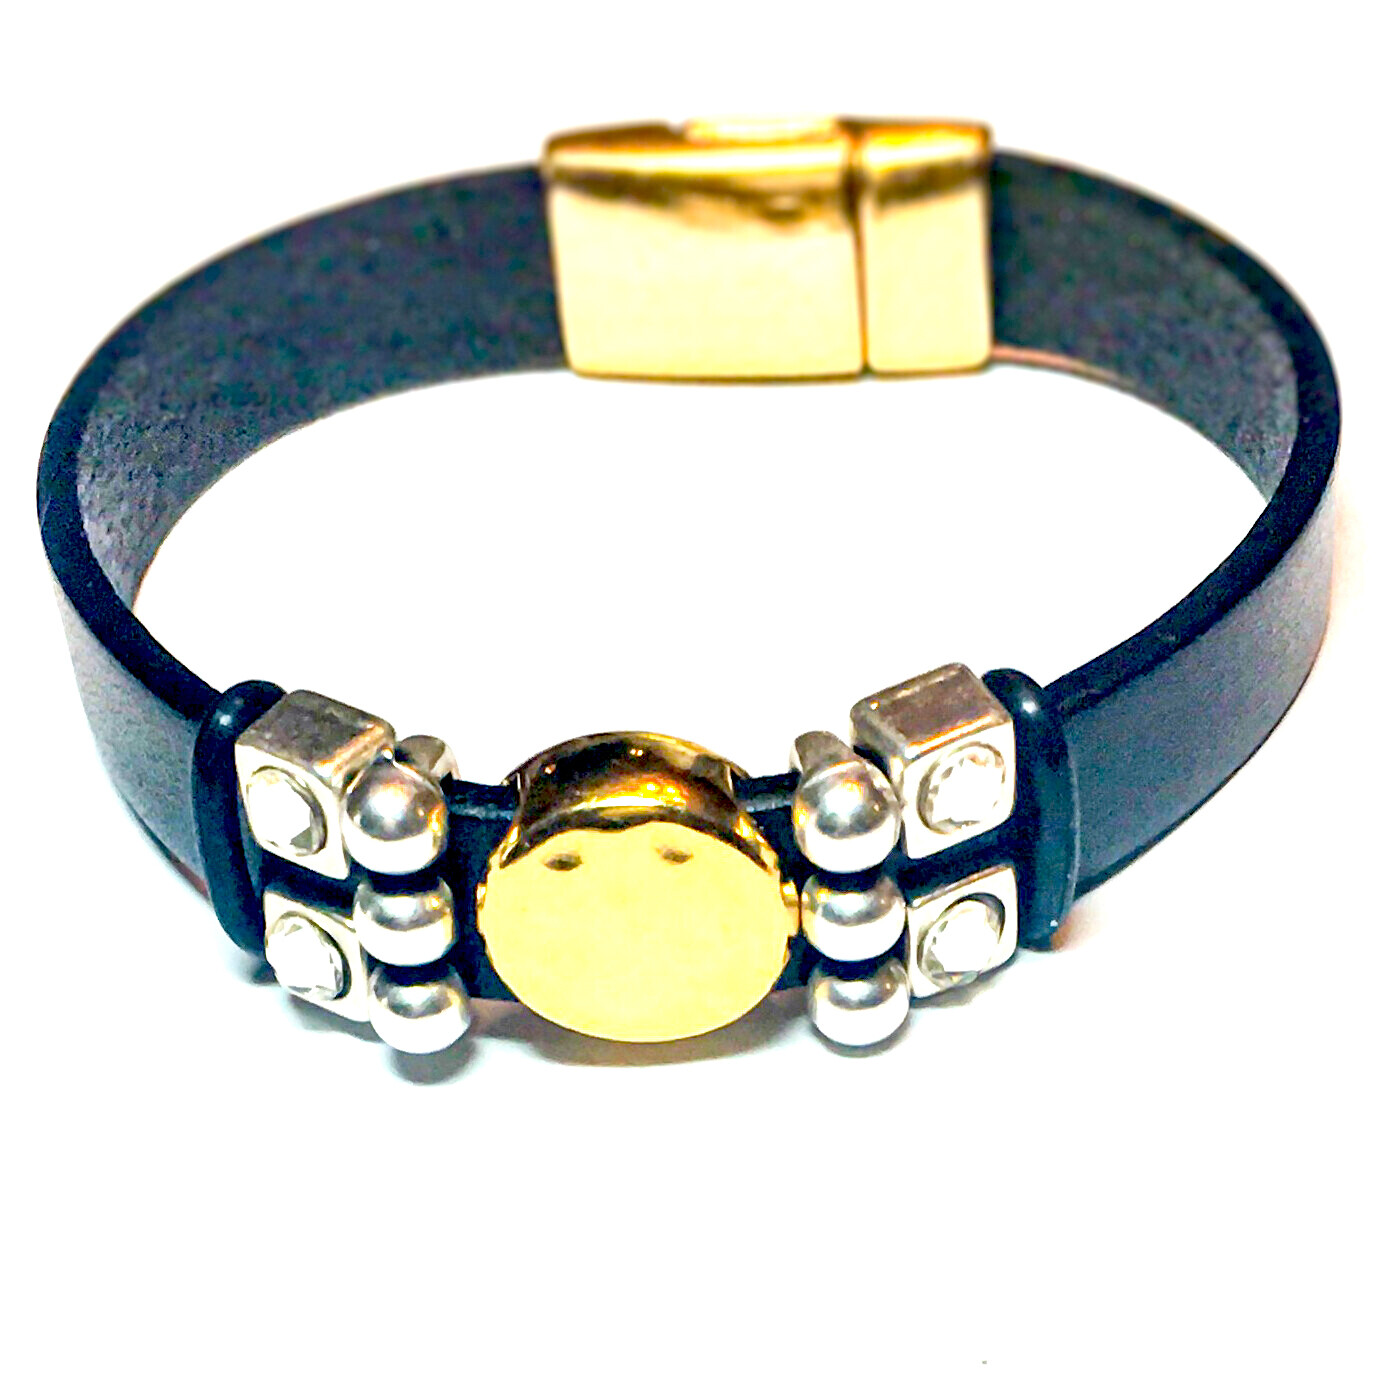 Bracelet | Women's Black Leather & Gold With Silver Bling